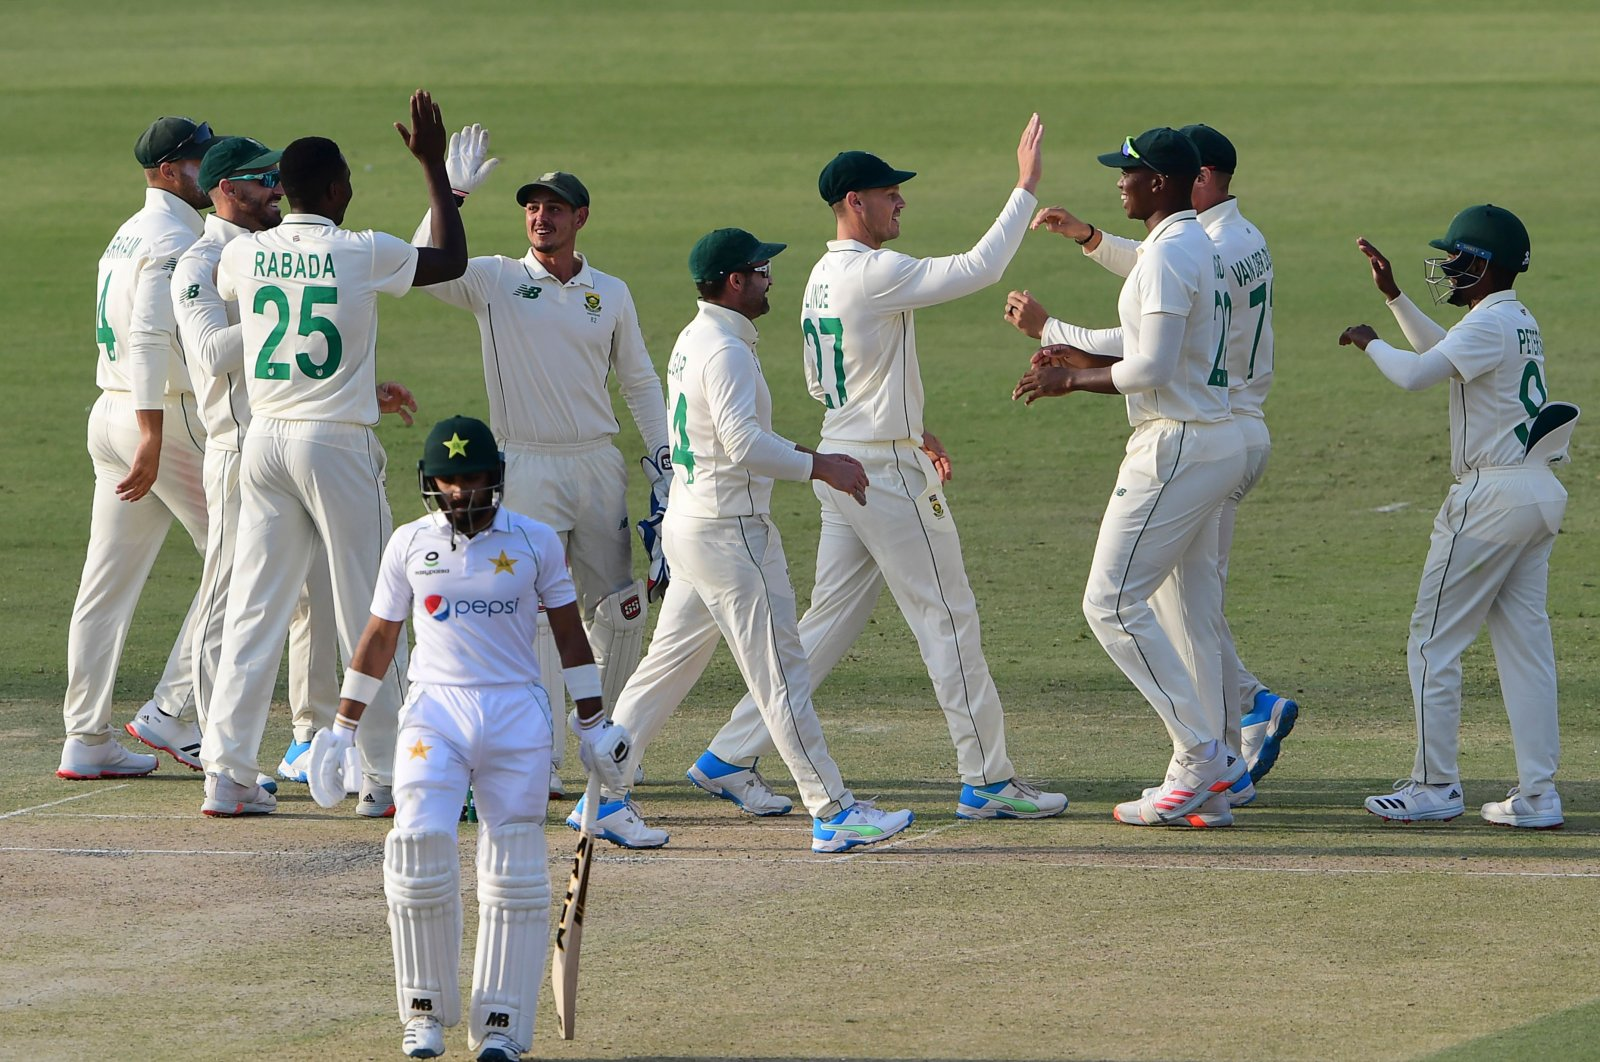 South African players celebrate the dismissal of Pakistan's Imran Butt (front) during the first day of the first Test at the National Stadium, Karachi, Pakistan, Jan. 26, 2021. (AFP Photo)